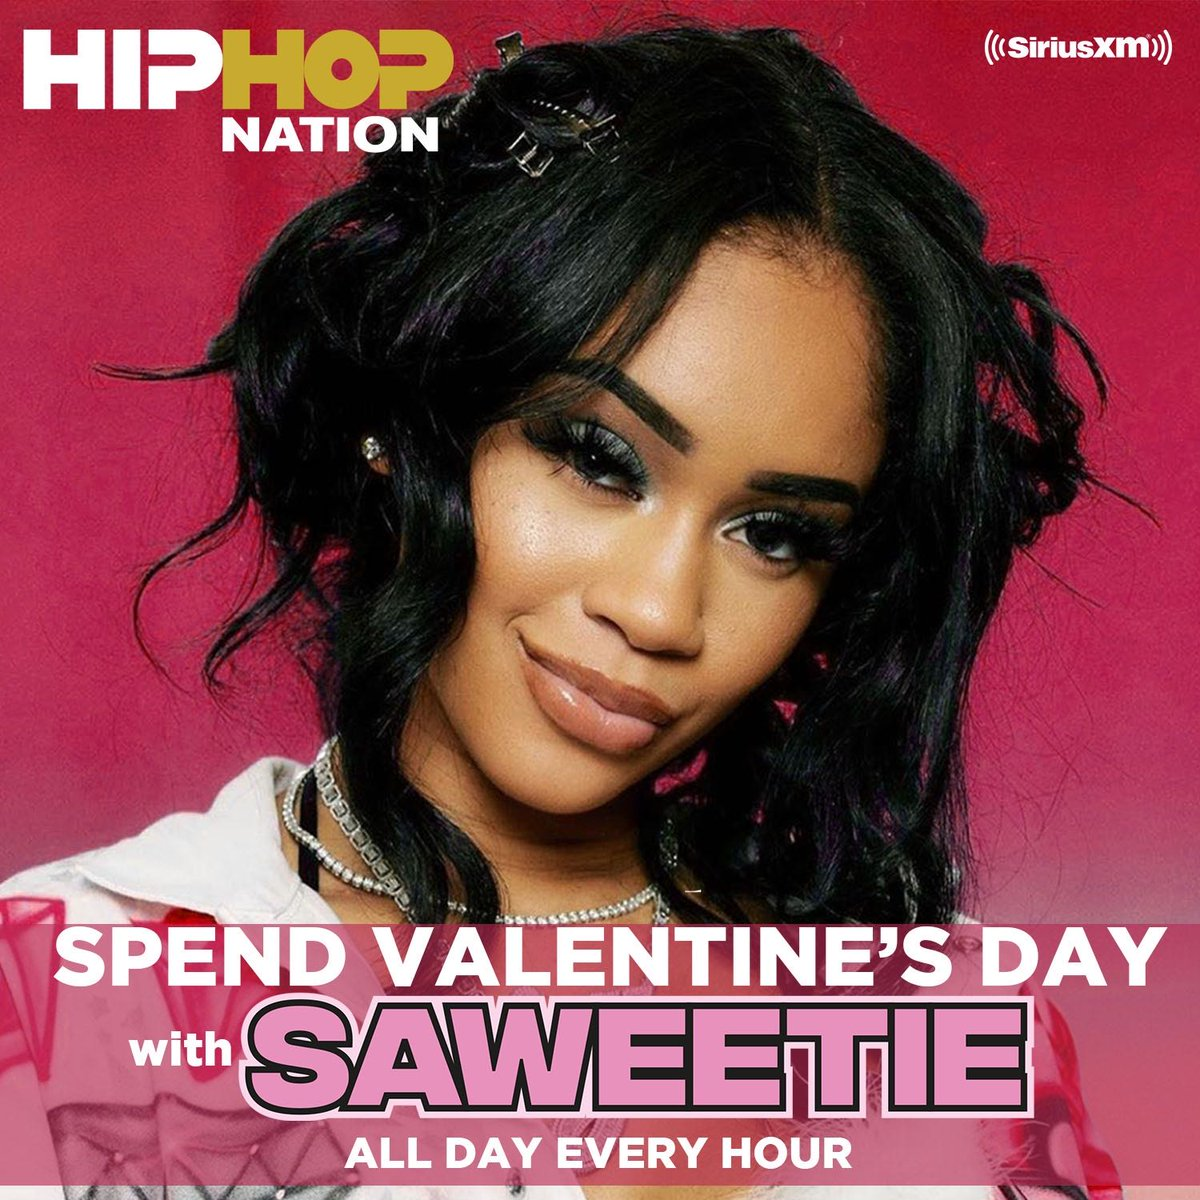 .@Saweetie shoots cupid's arrow with hip hop love songs all day long with cuts from @Drake, @kendricklamar, @chancetherapper & more: